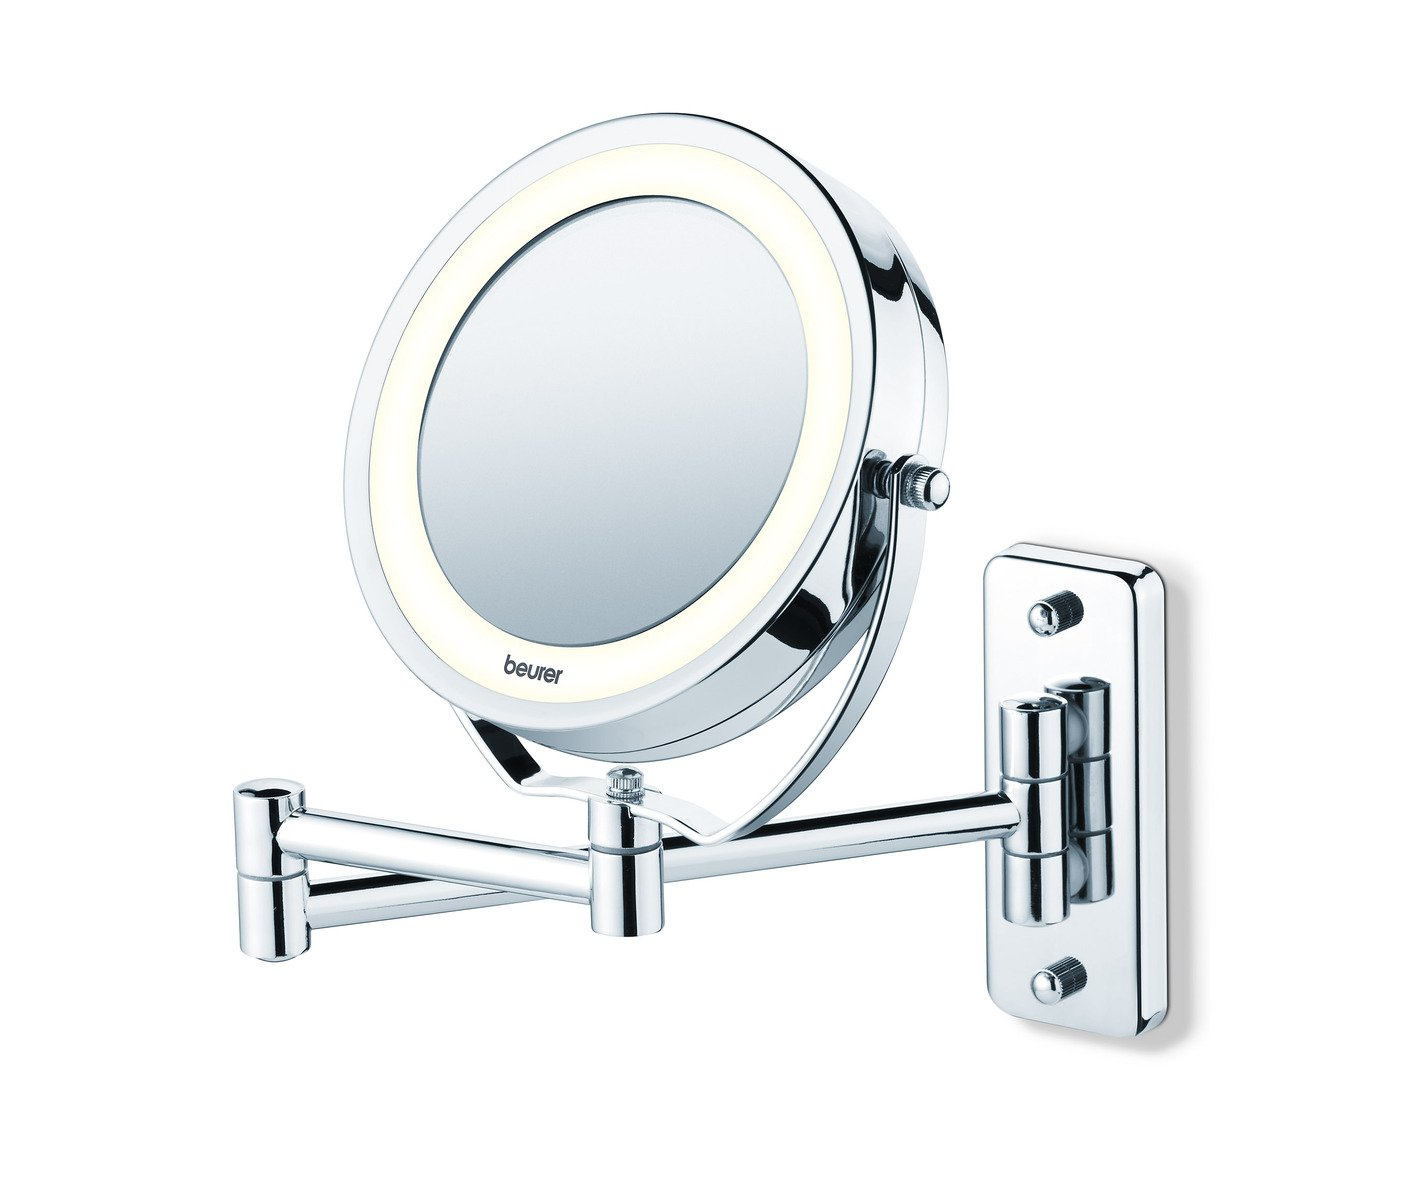 Beurer - BS 59 Cosmetic mirror - 3 Years Warranty